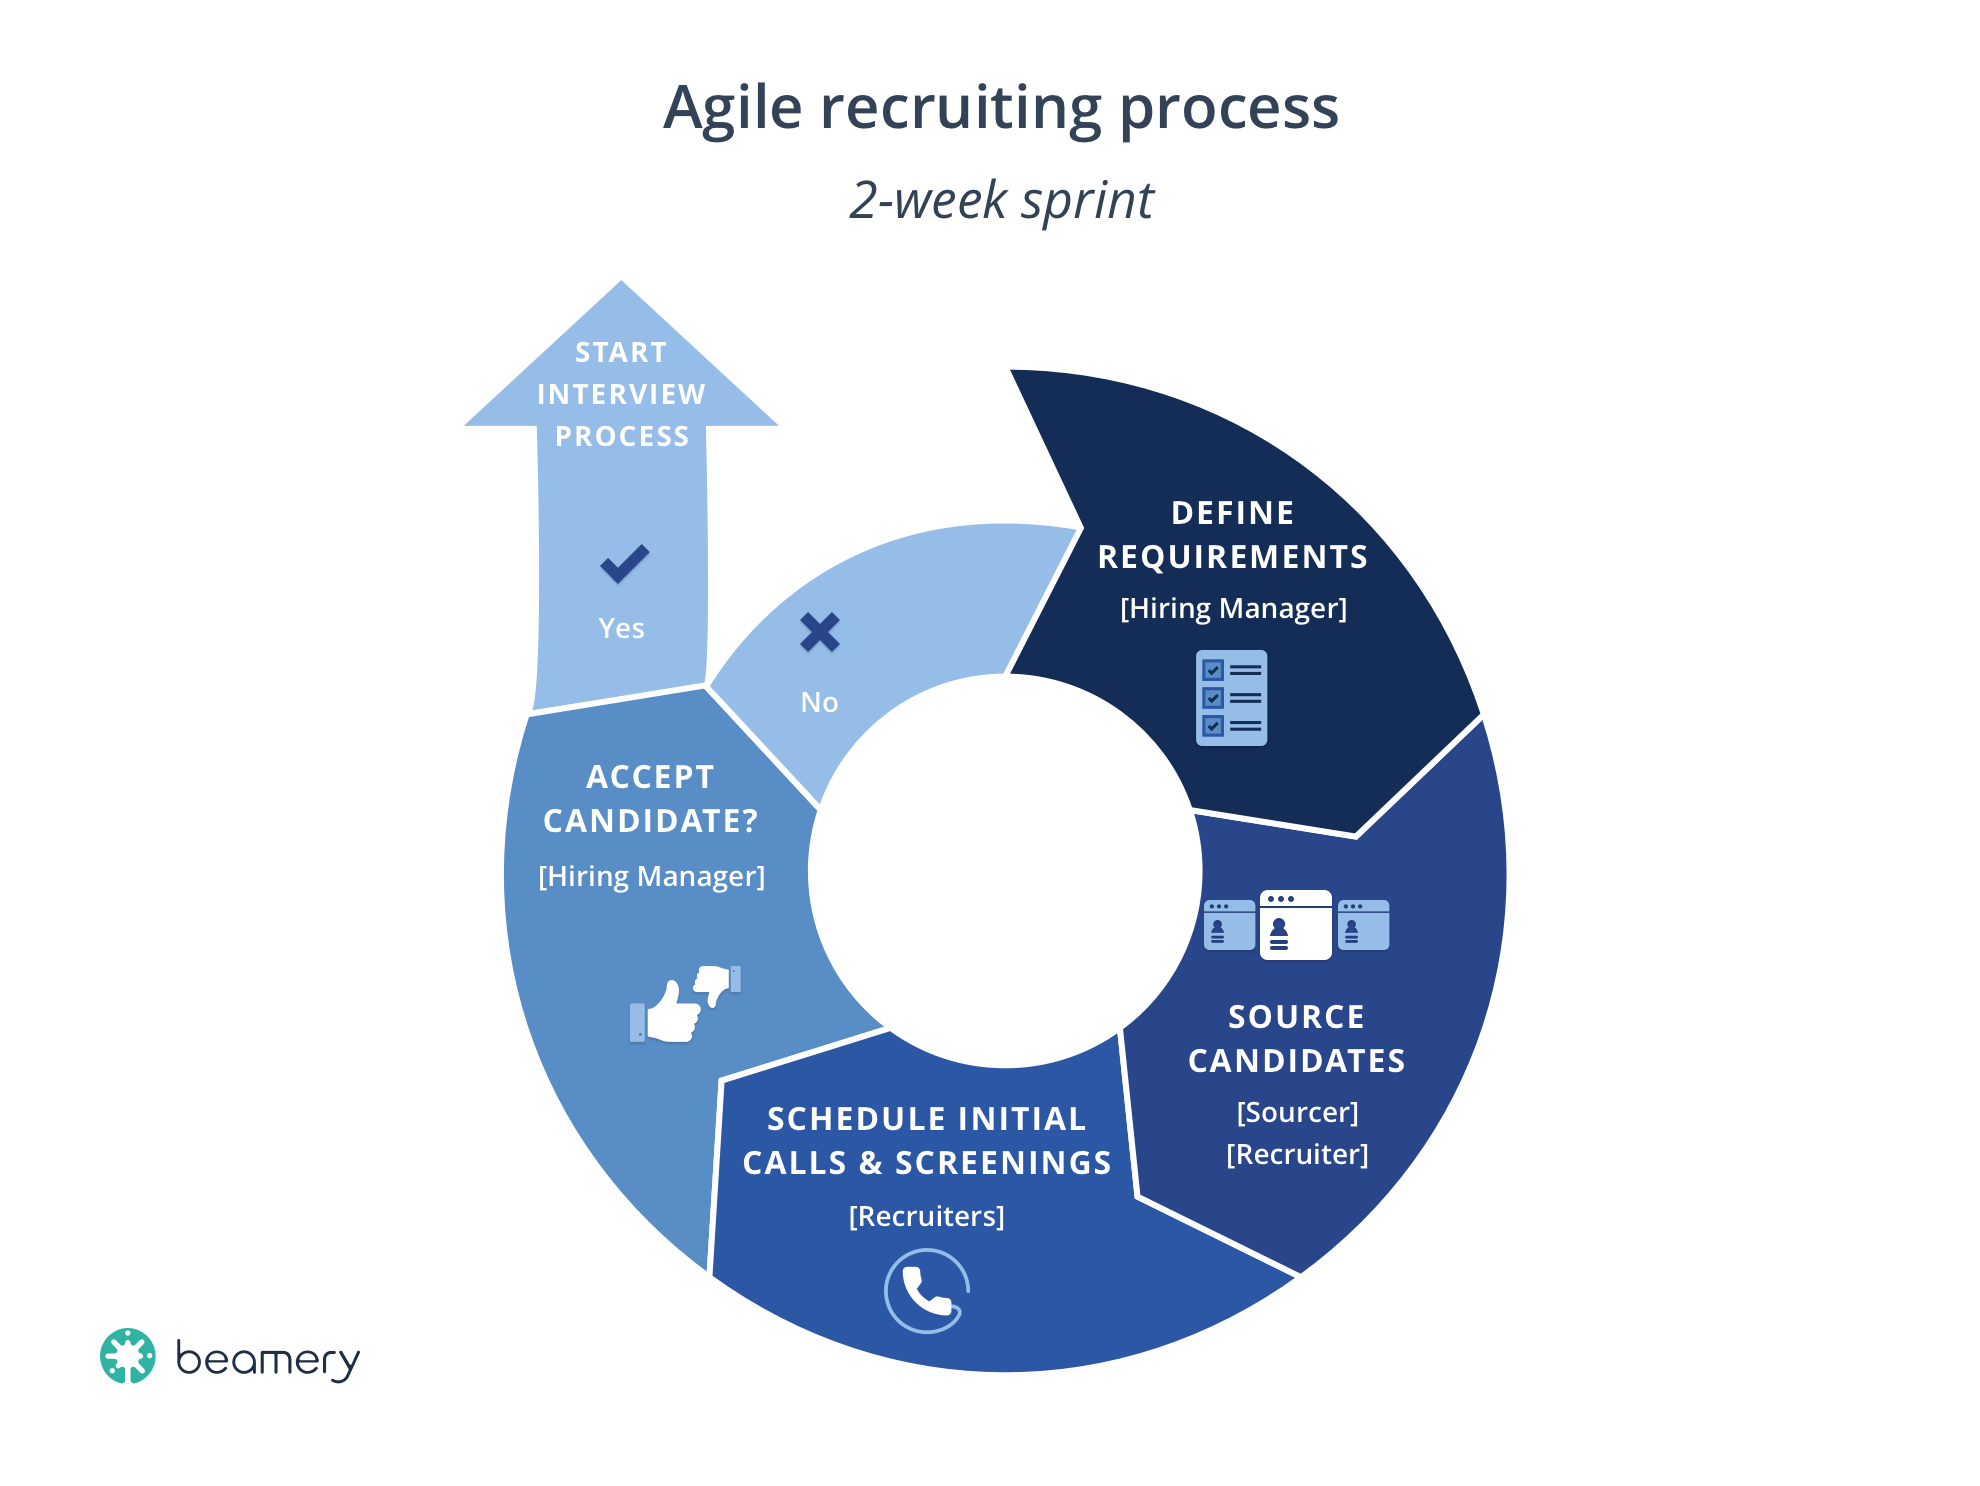 Agile Project Planning Steps a framework for agile recruiting implementation